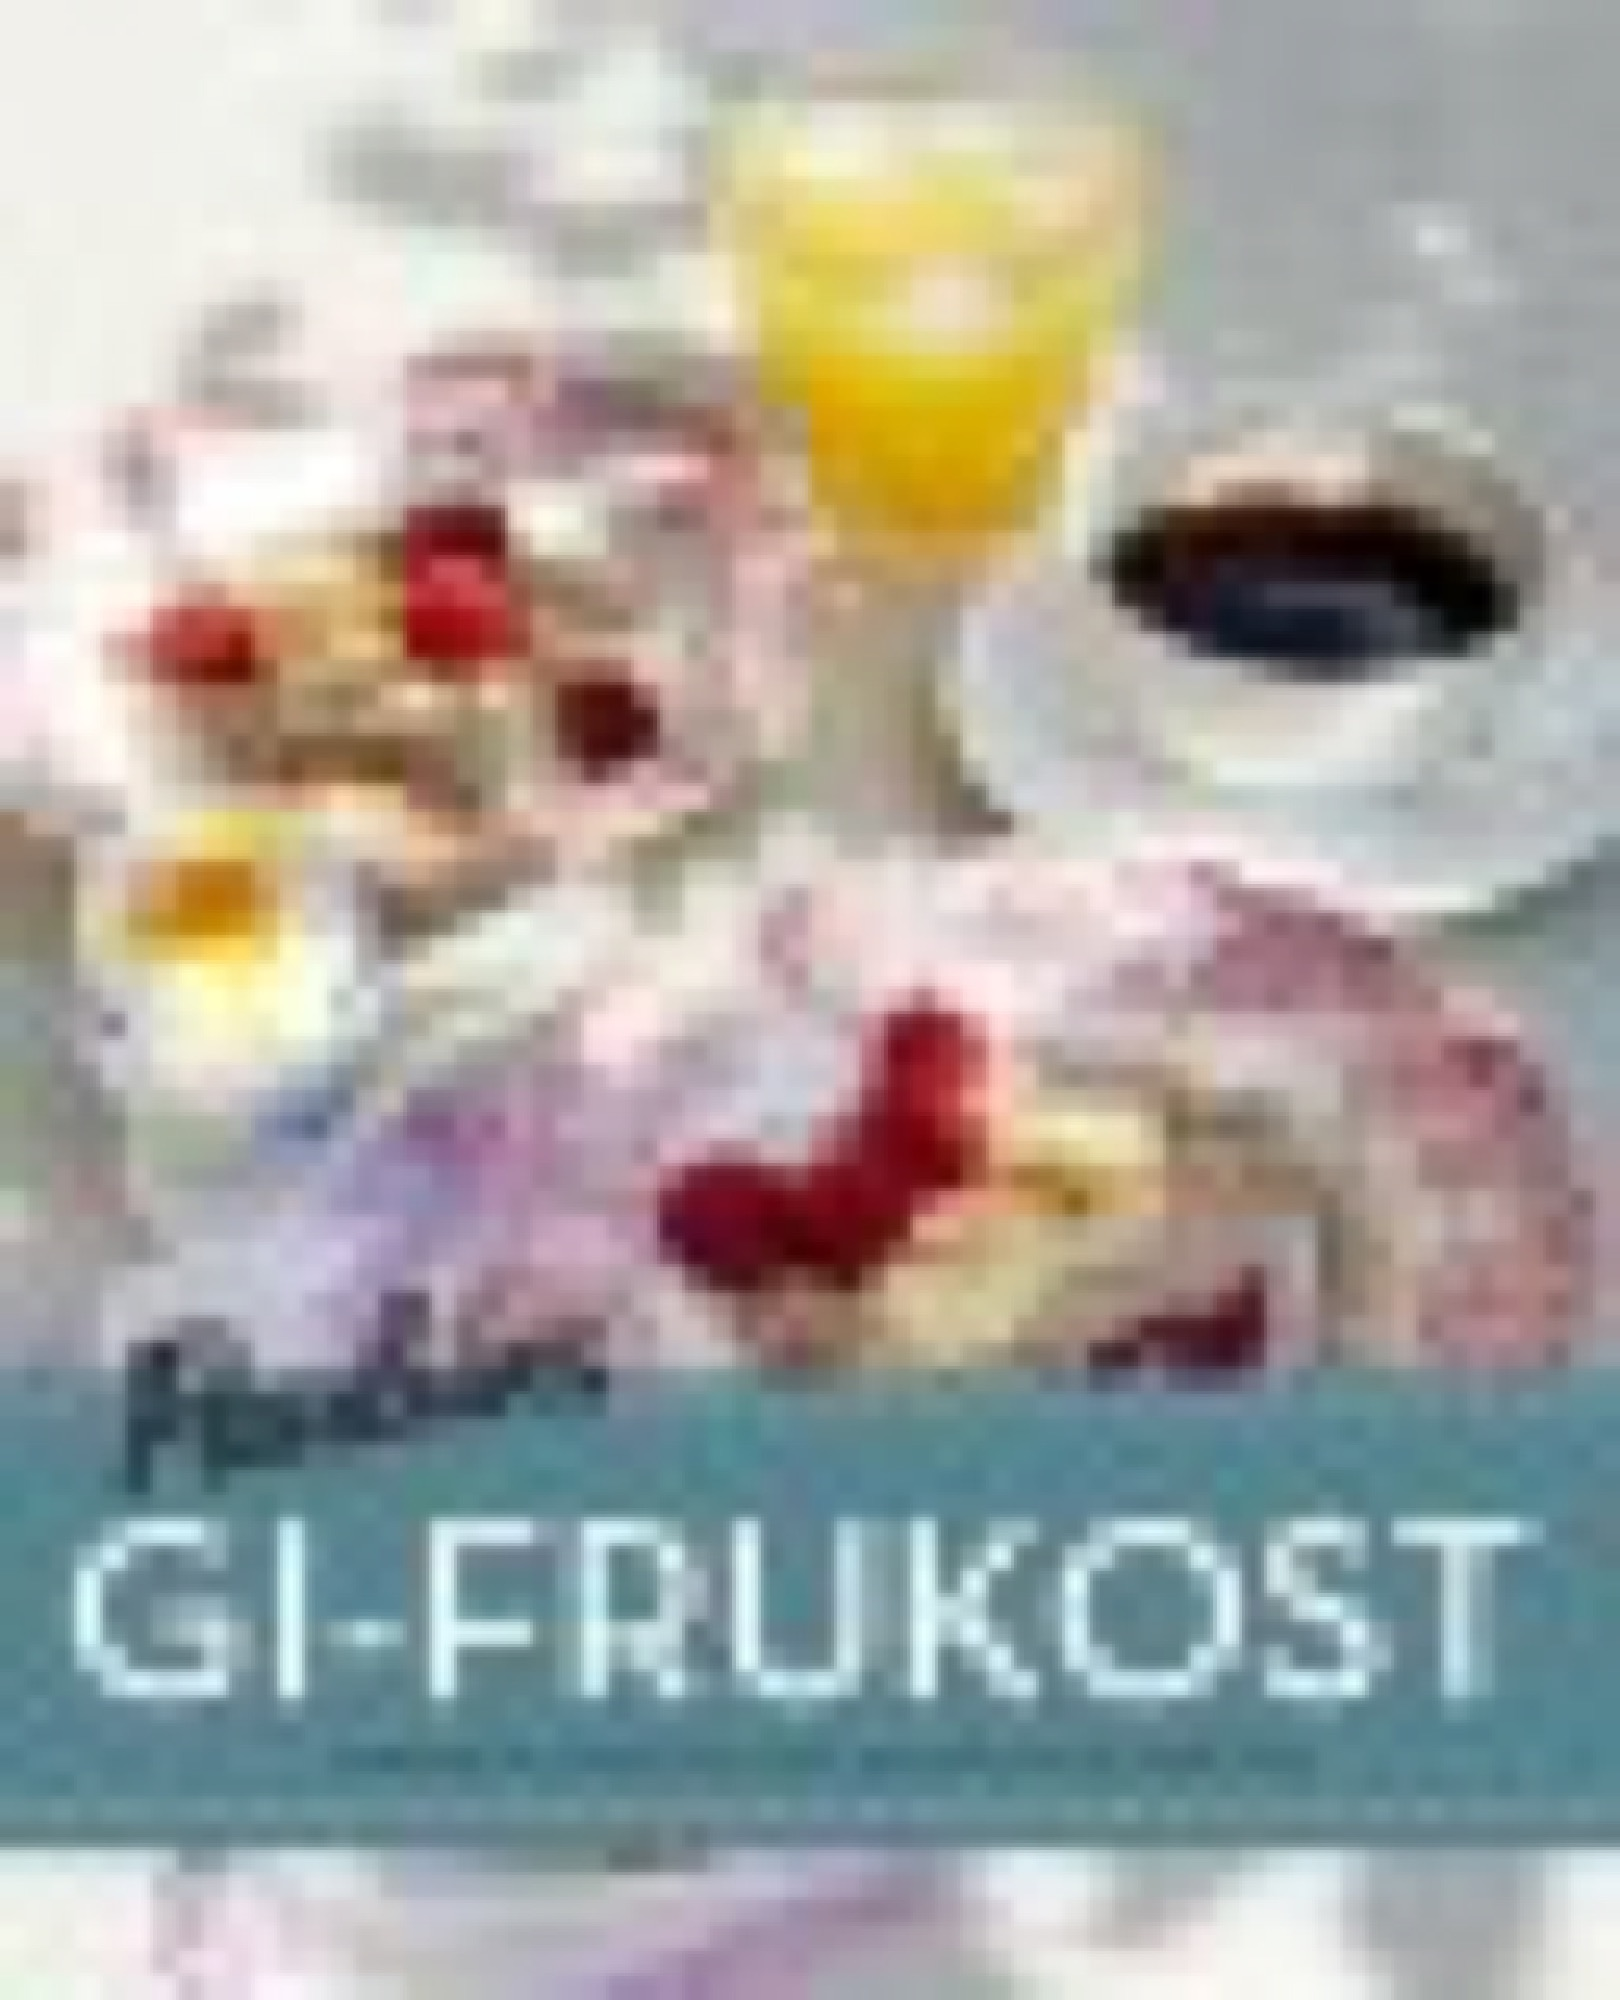 Paulns Gi-frukost